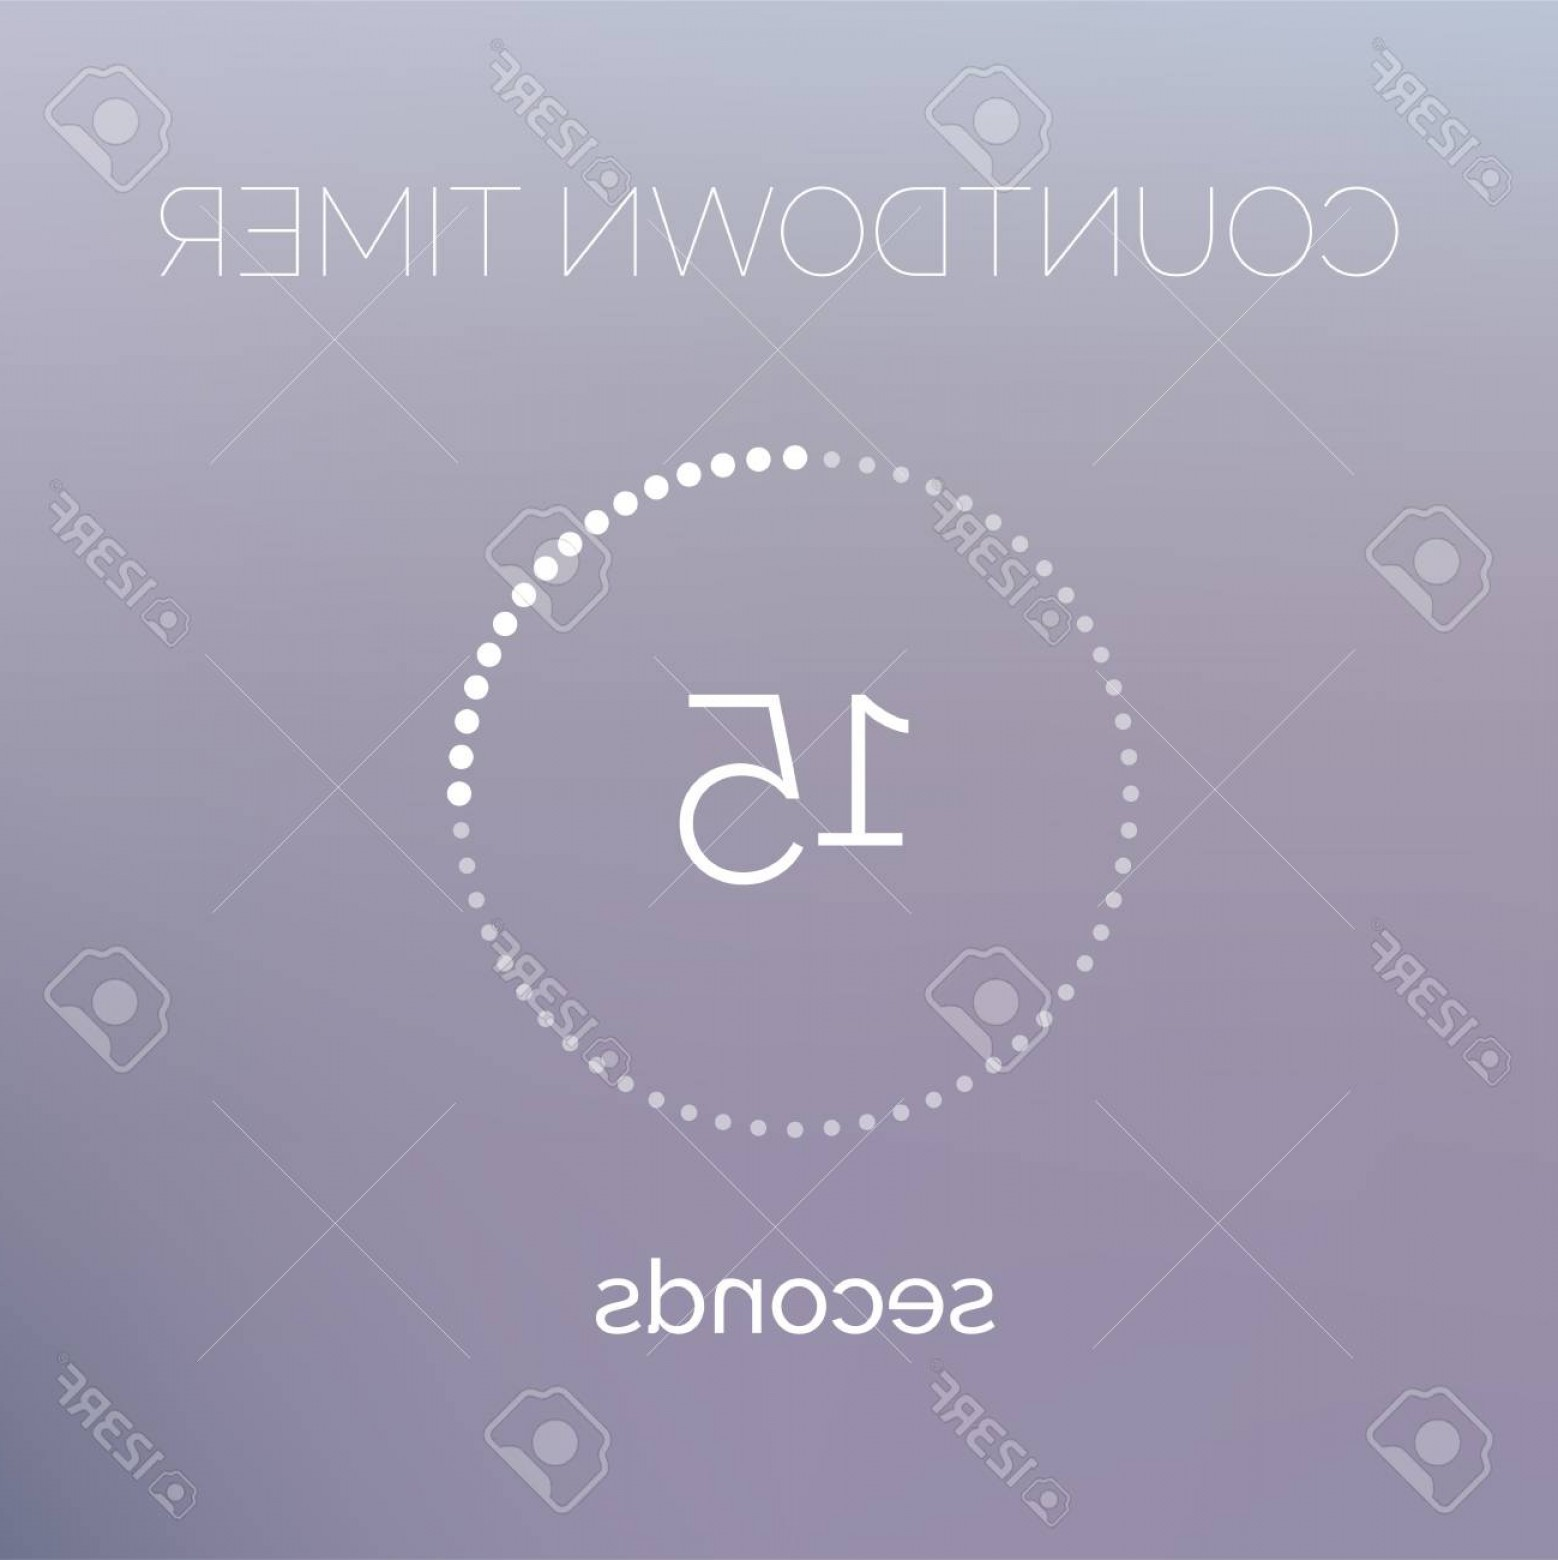 Downloadable Vector Cross: Photostock Vector Countdown Timer Digital Downloading Counter With Circle Dots Line Vector Icon